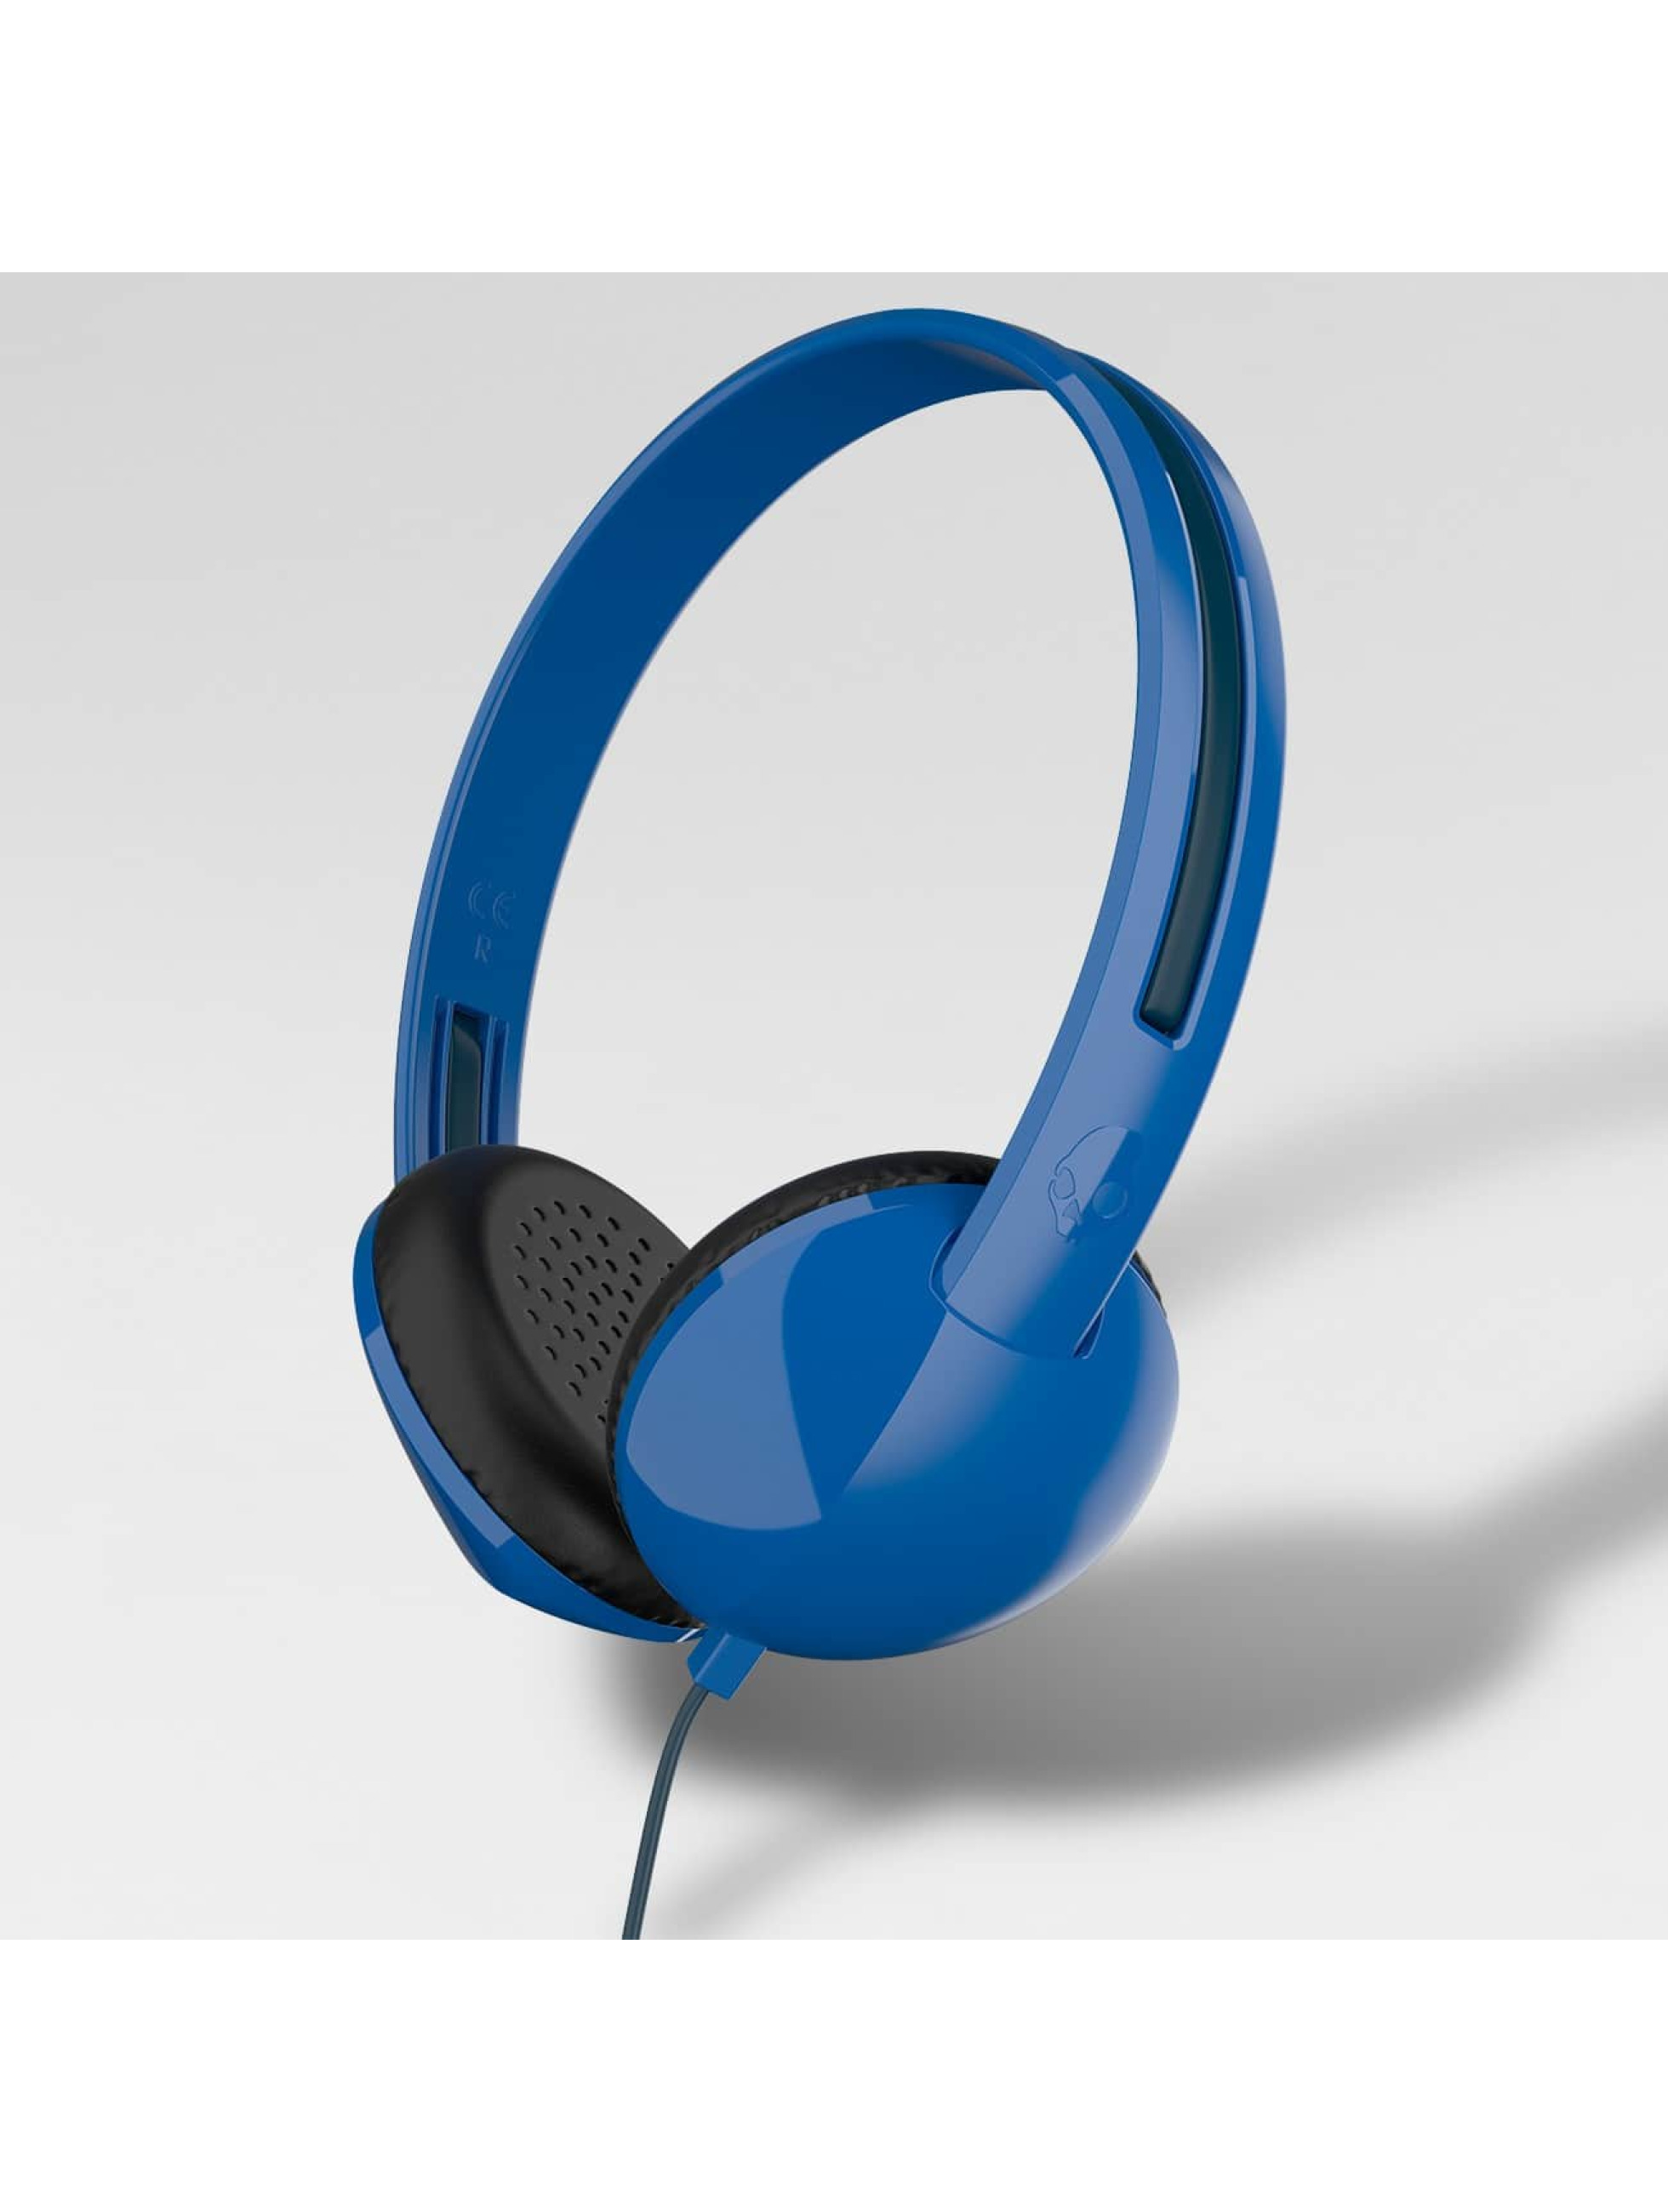 Skullcandy Kuulokkeet Stim Mic 1 On Ear sininen